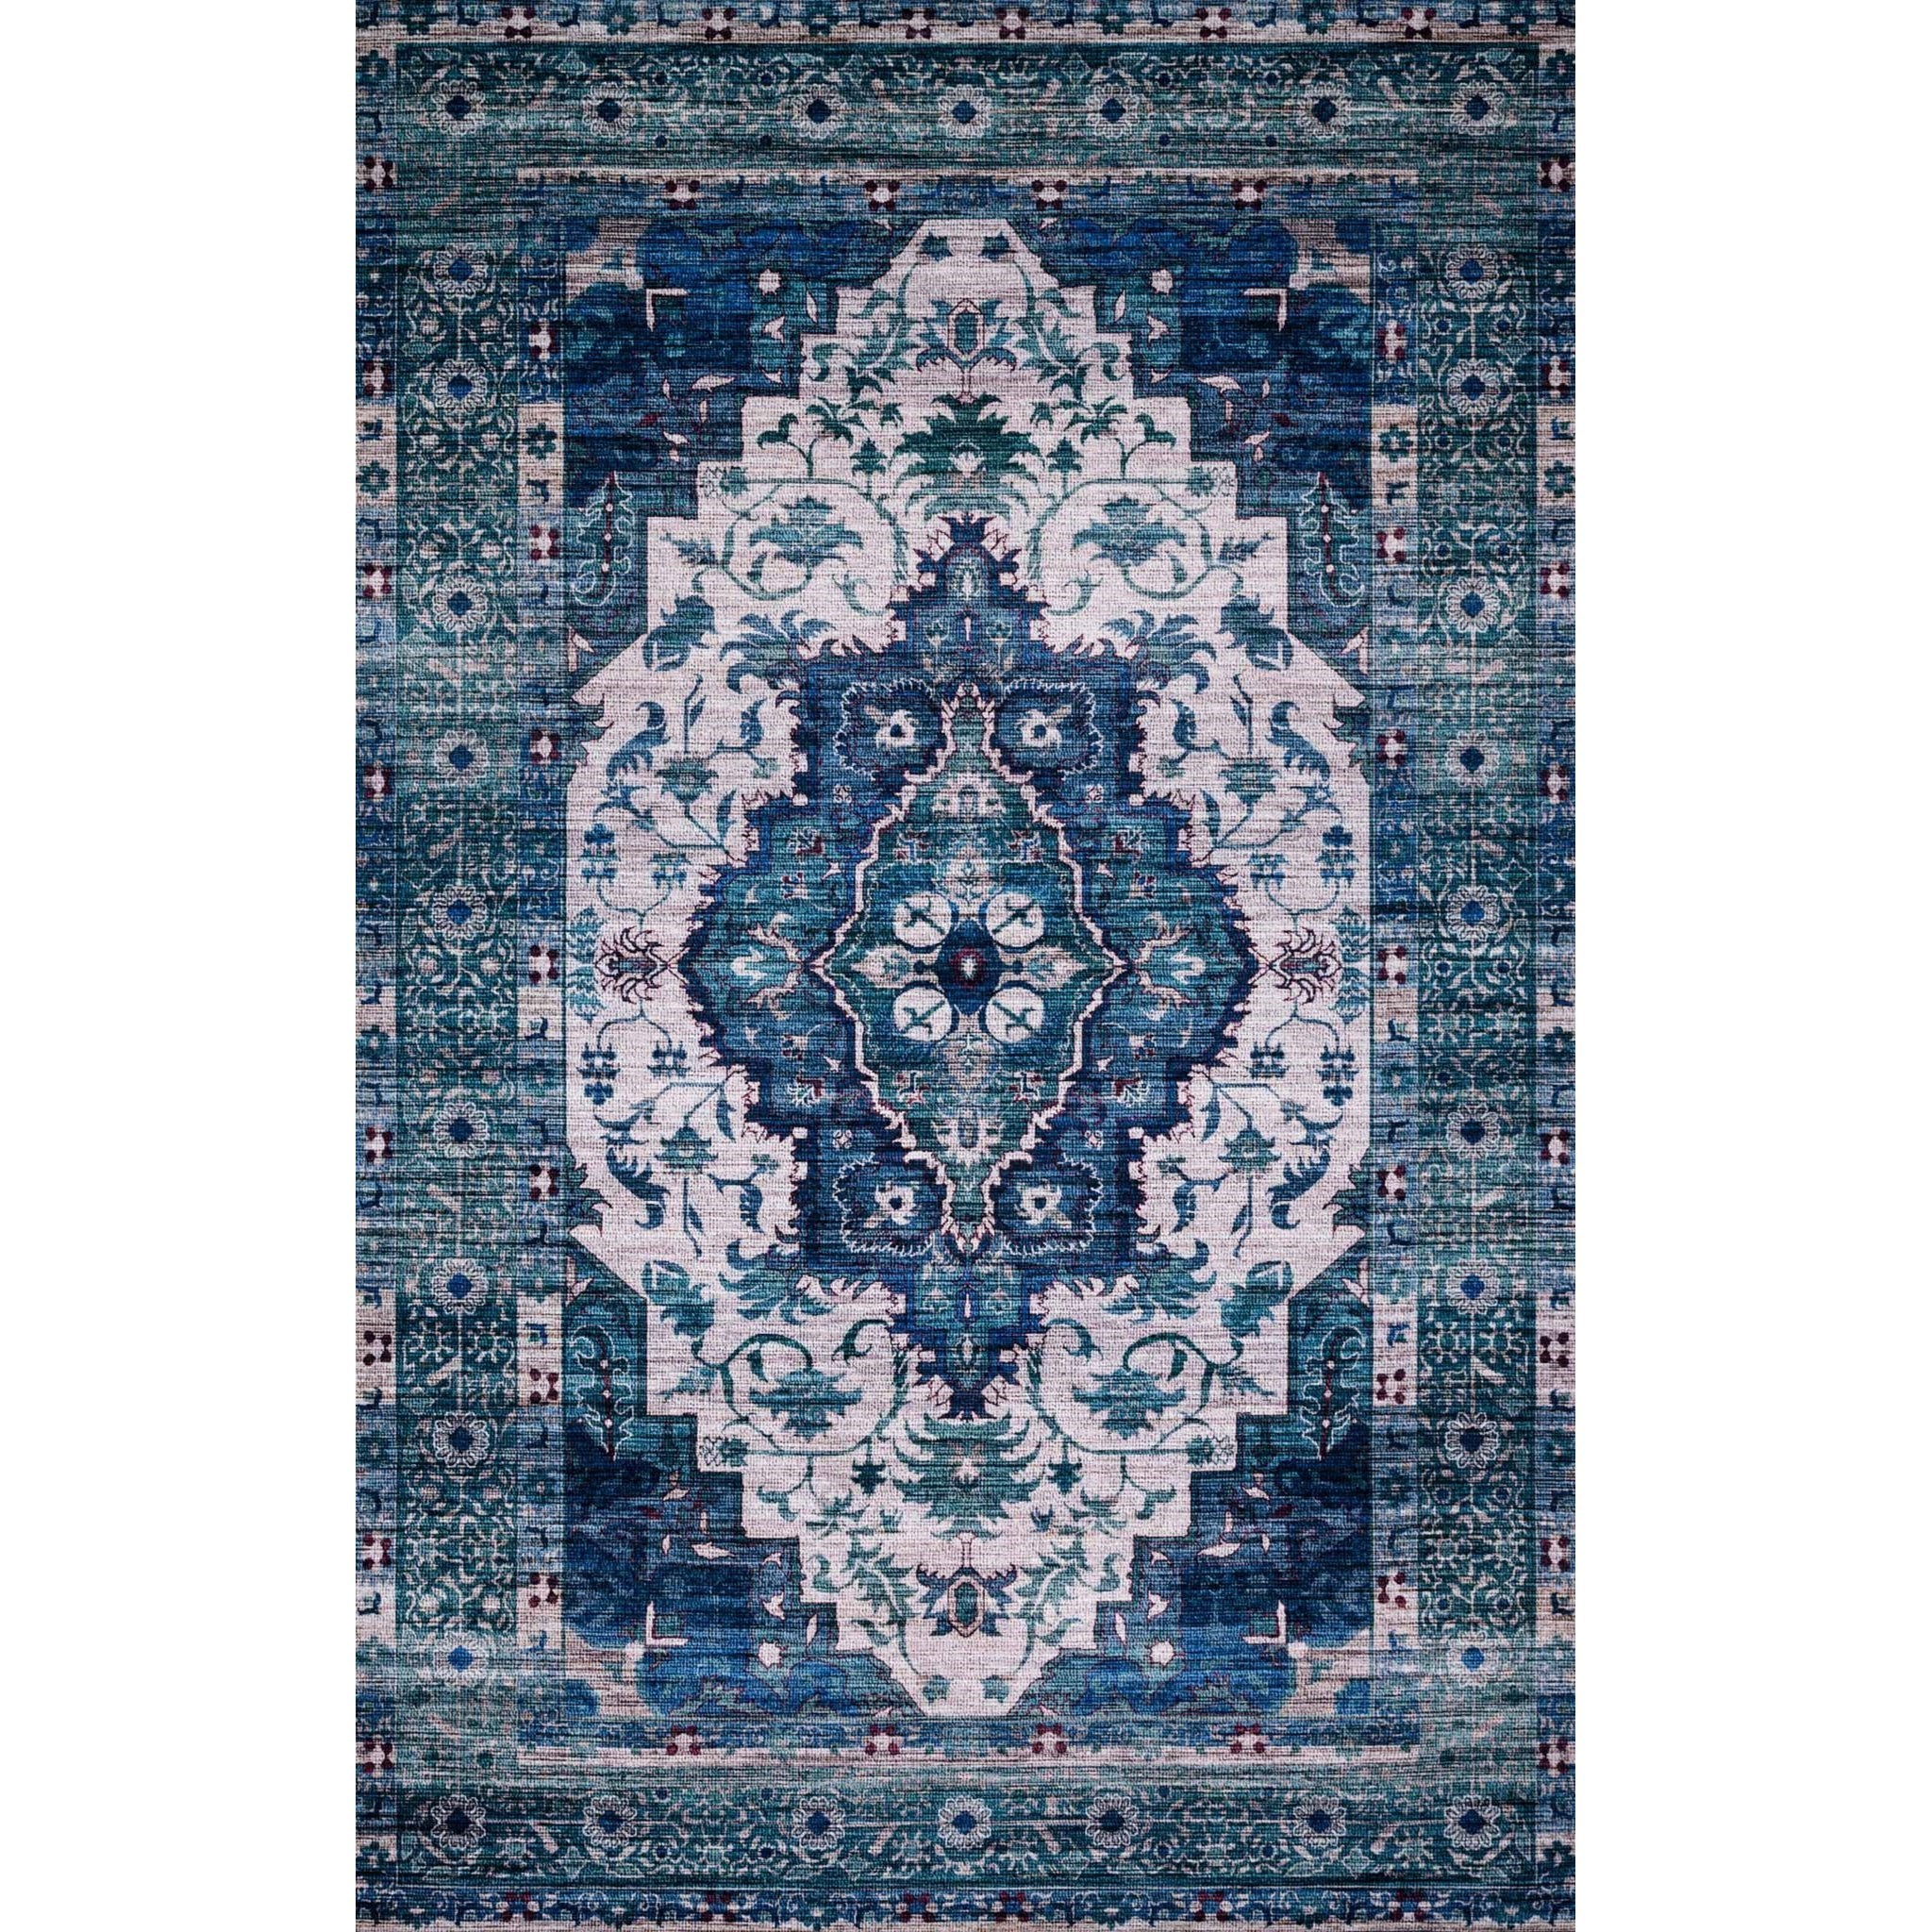 """Cielo-Loloi X Justina Blakeney Collection 2'-6"""" x 7'-6"""" Rug by Loloi Rugs at Virginia Furniture Market"""